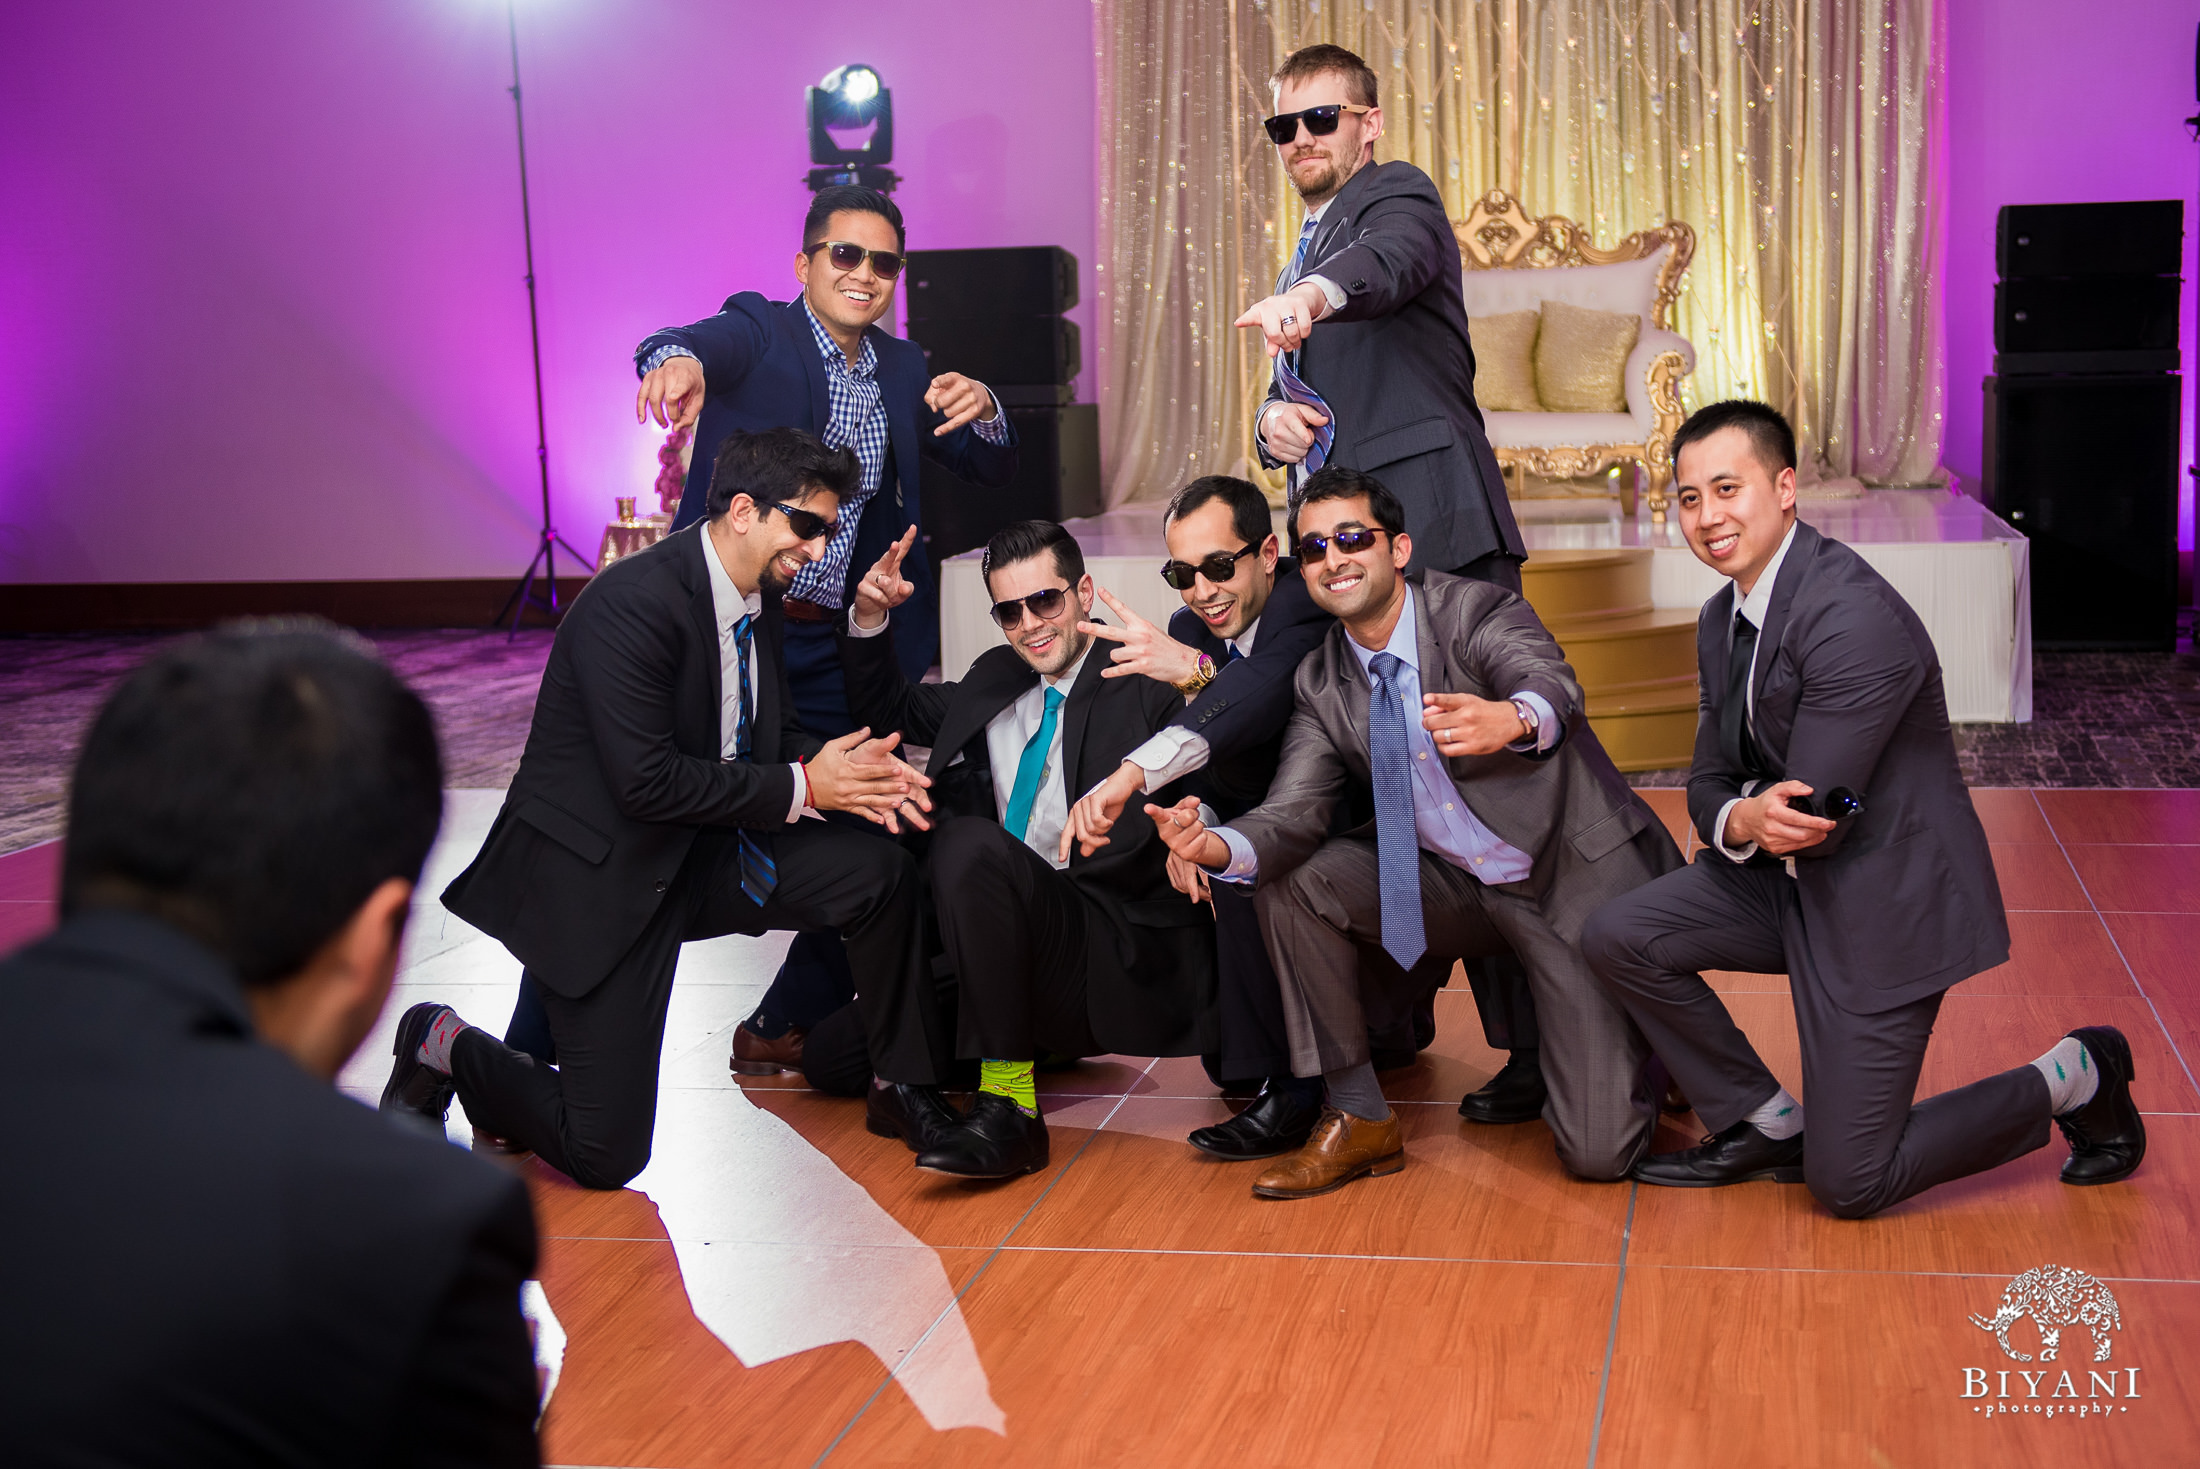 groomsmen posing after their dance on the reception dance floor